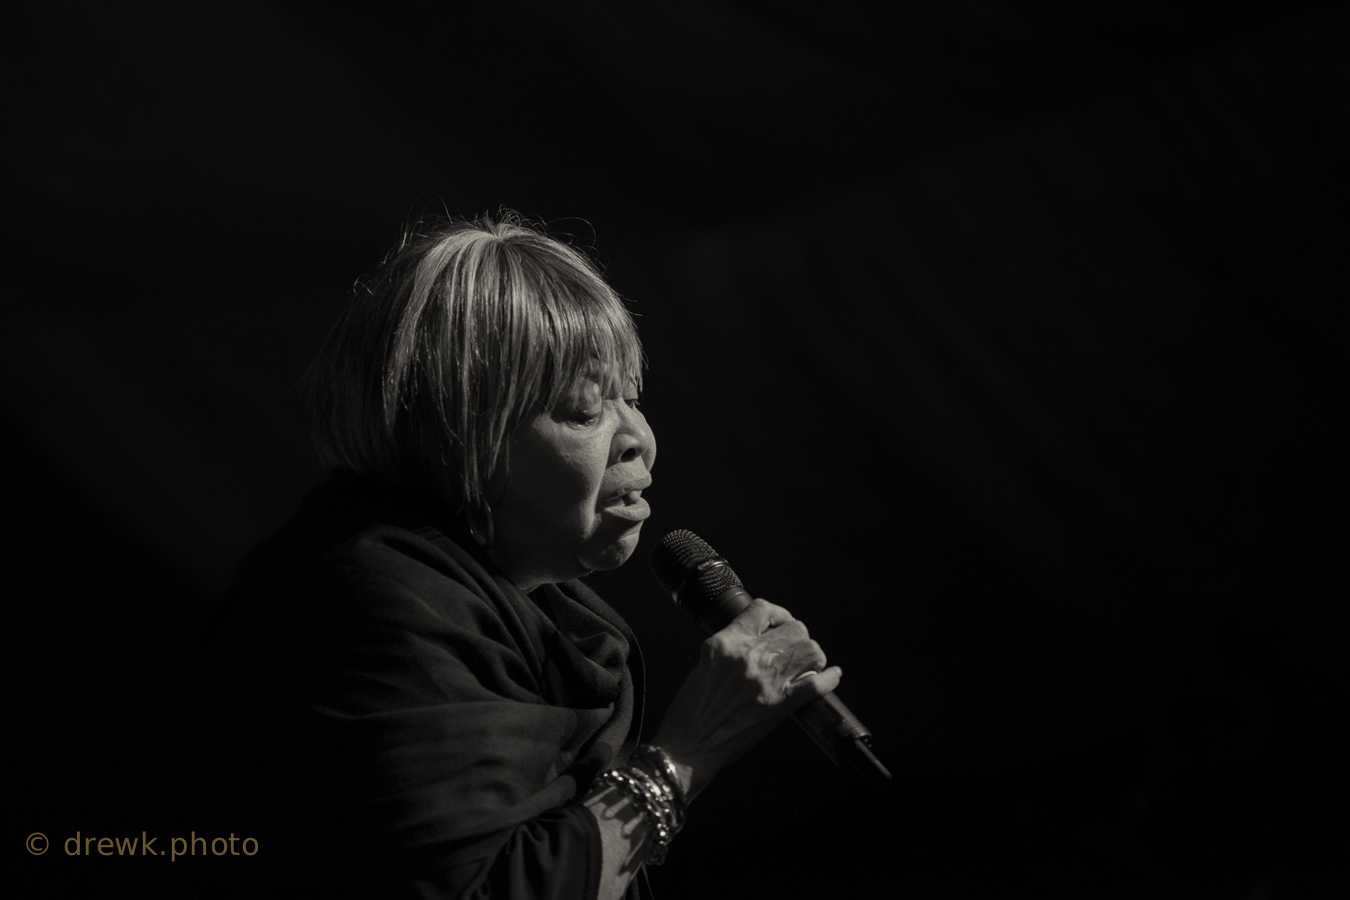 <alt>Mavis Staples</alt><br/>